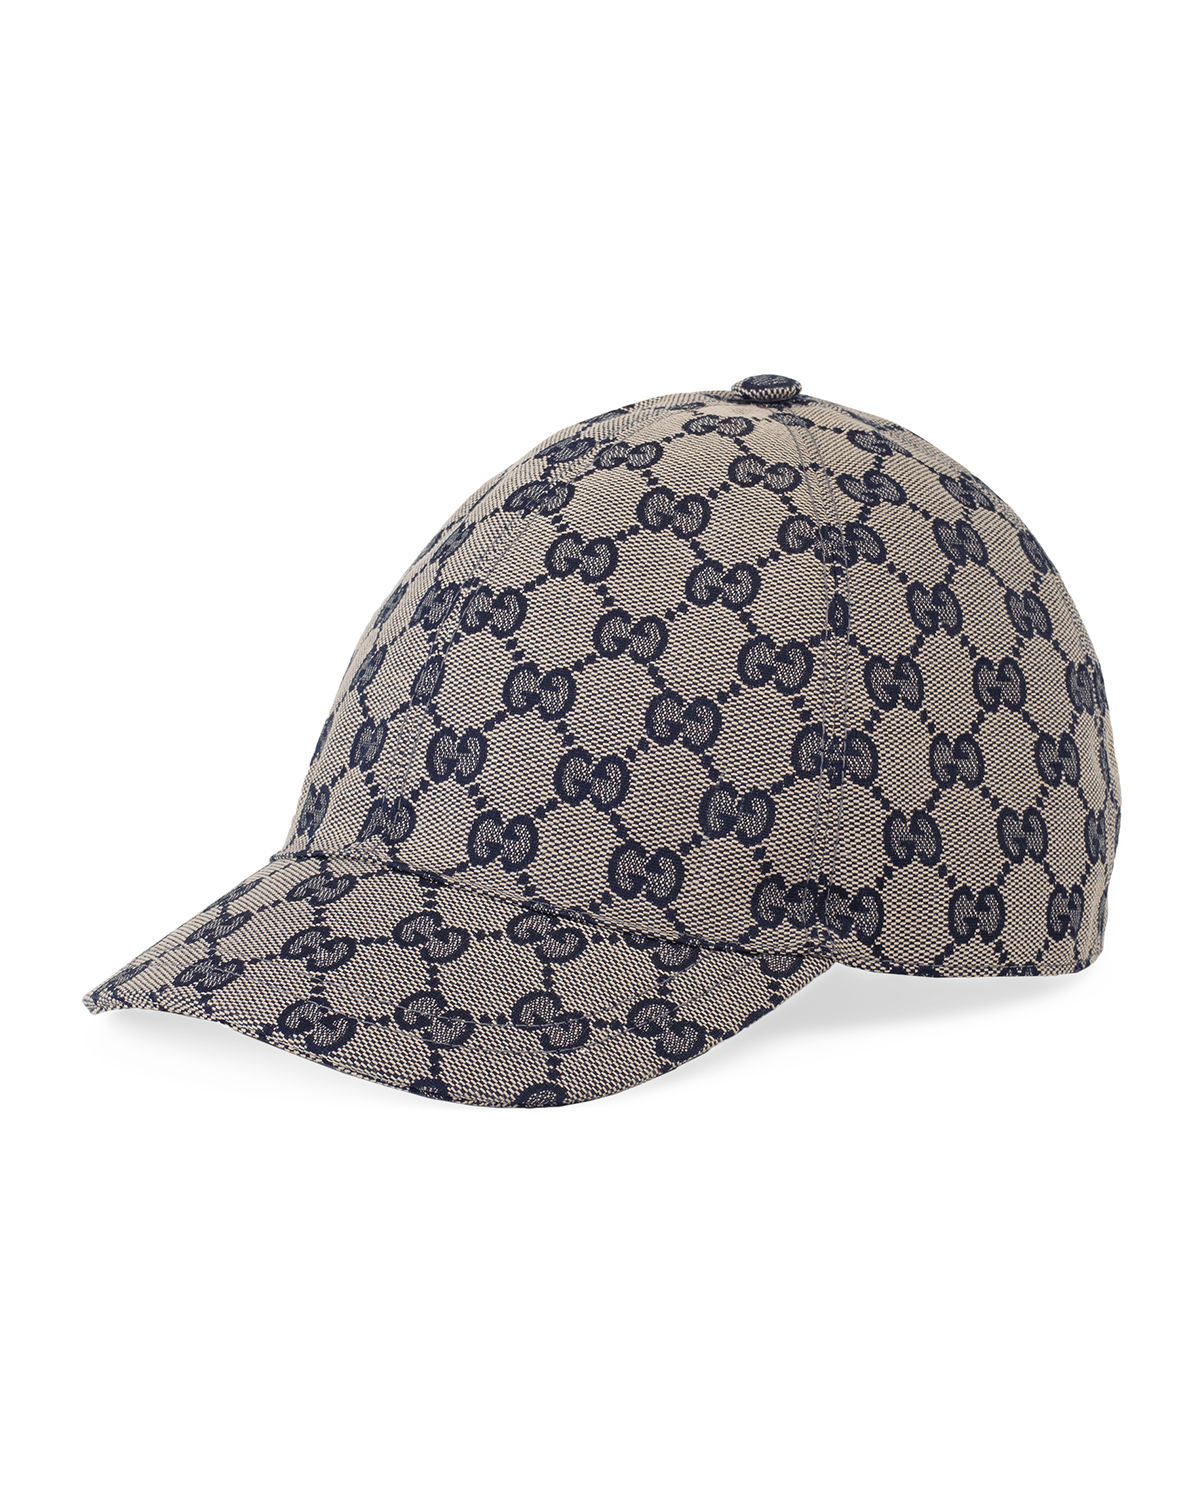 b845f298051 Gucci GG Supreme Canvas Baseball Hat